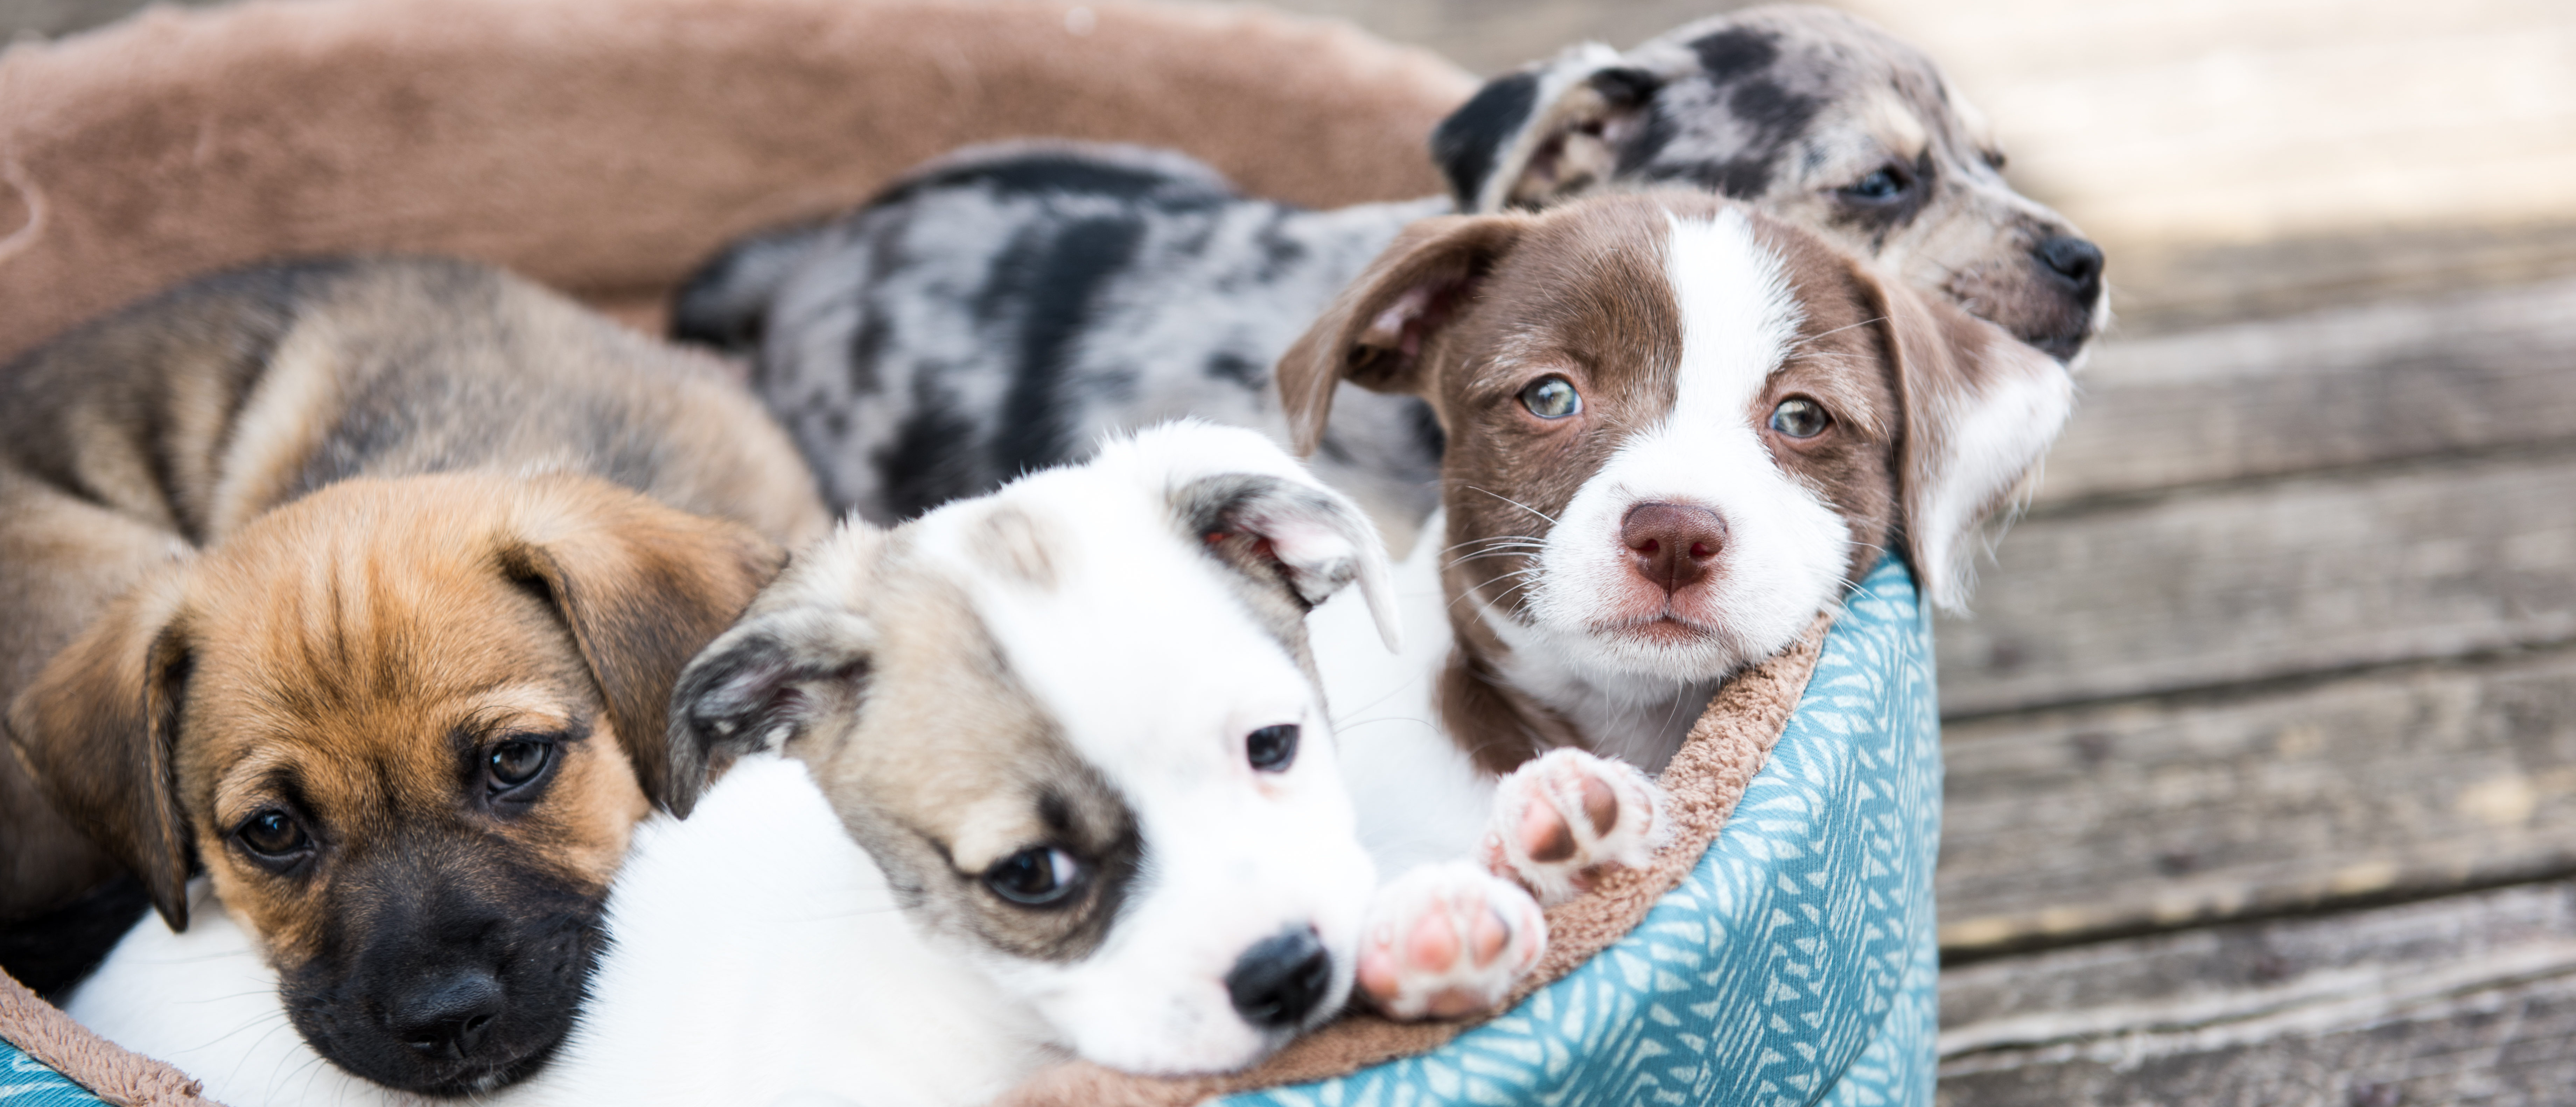 Litter of Terrier Mix Puppies Playing in Dog Bed Outside on Wooden Deck. Shutterstock